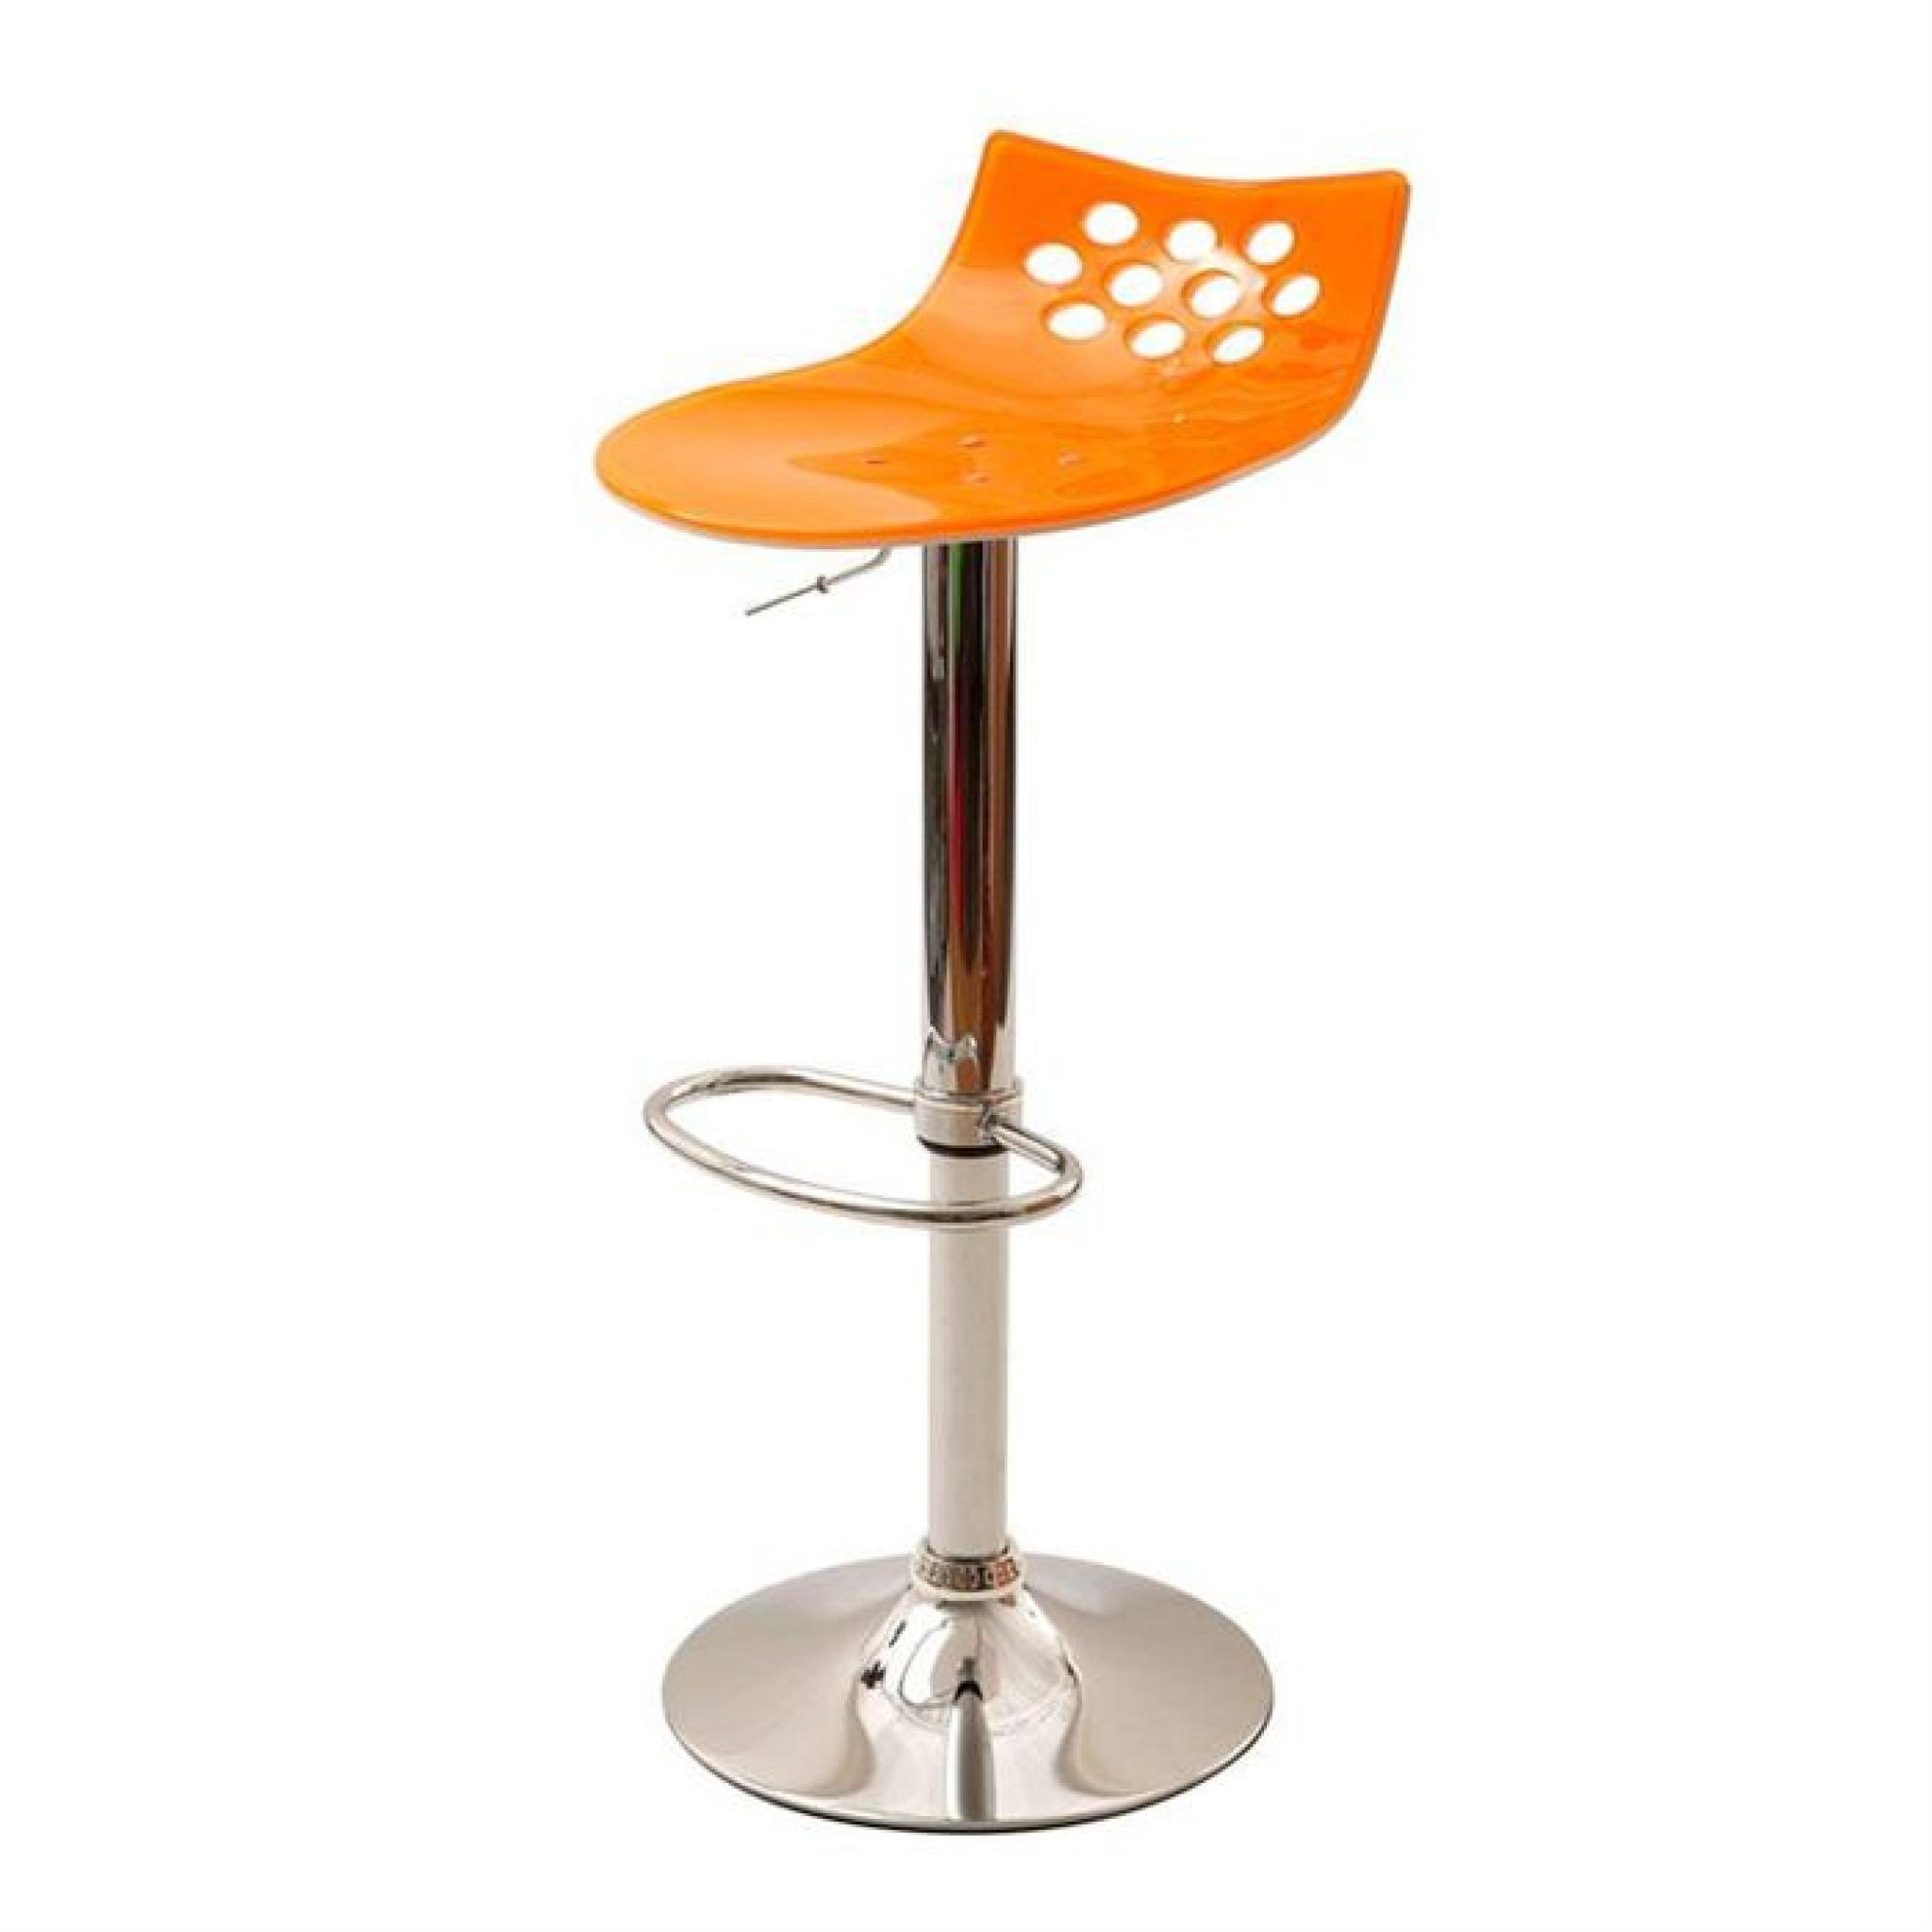 Tabouret de bar design orange et blanc MAGELLAN